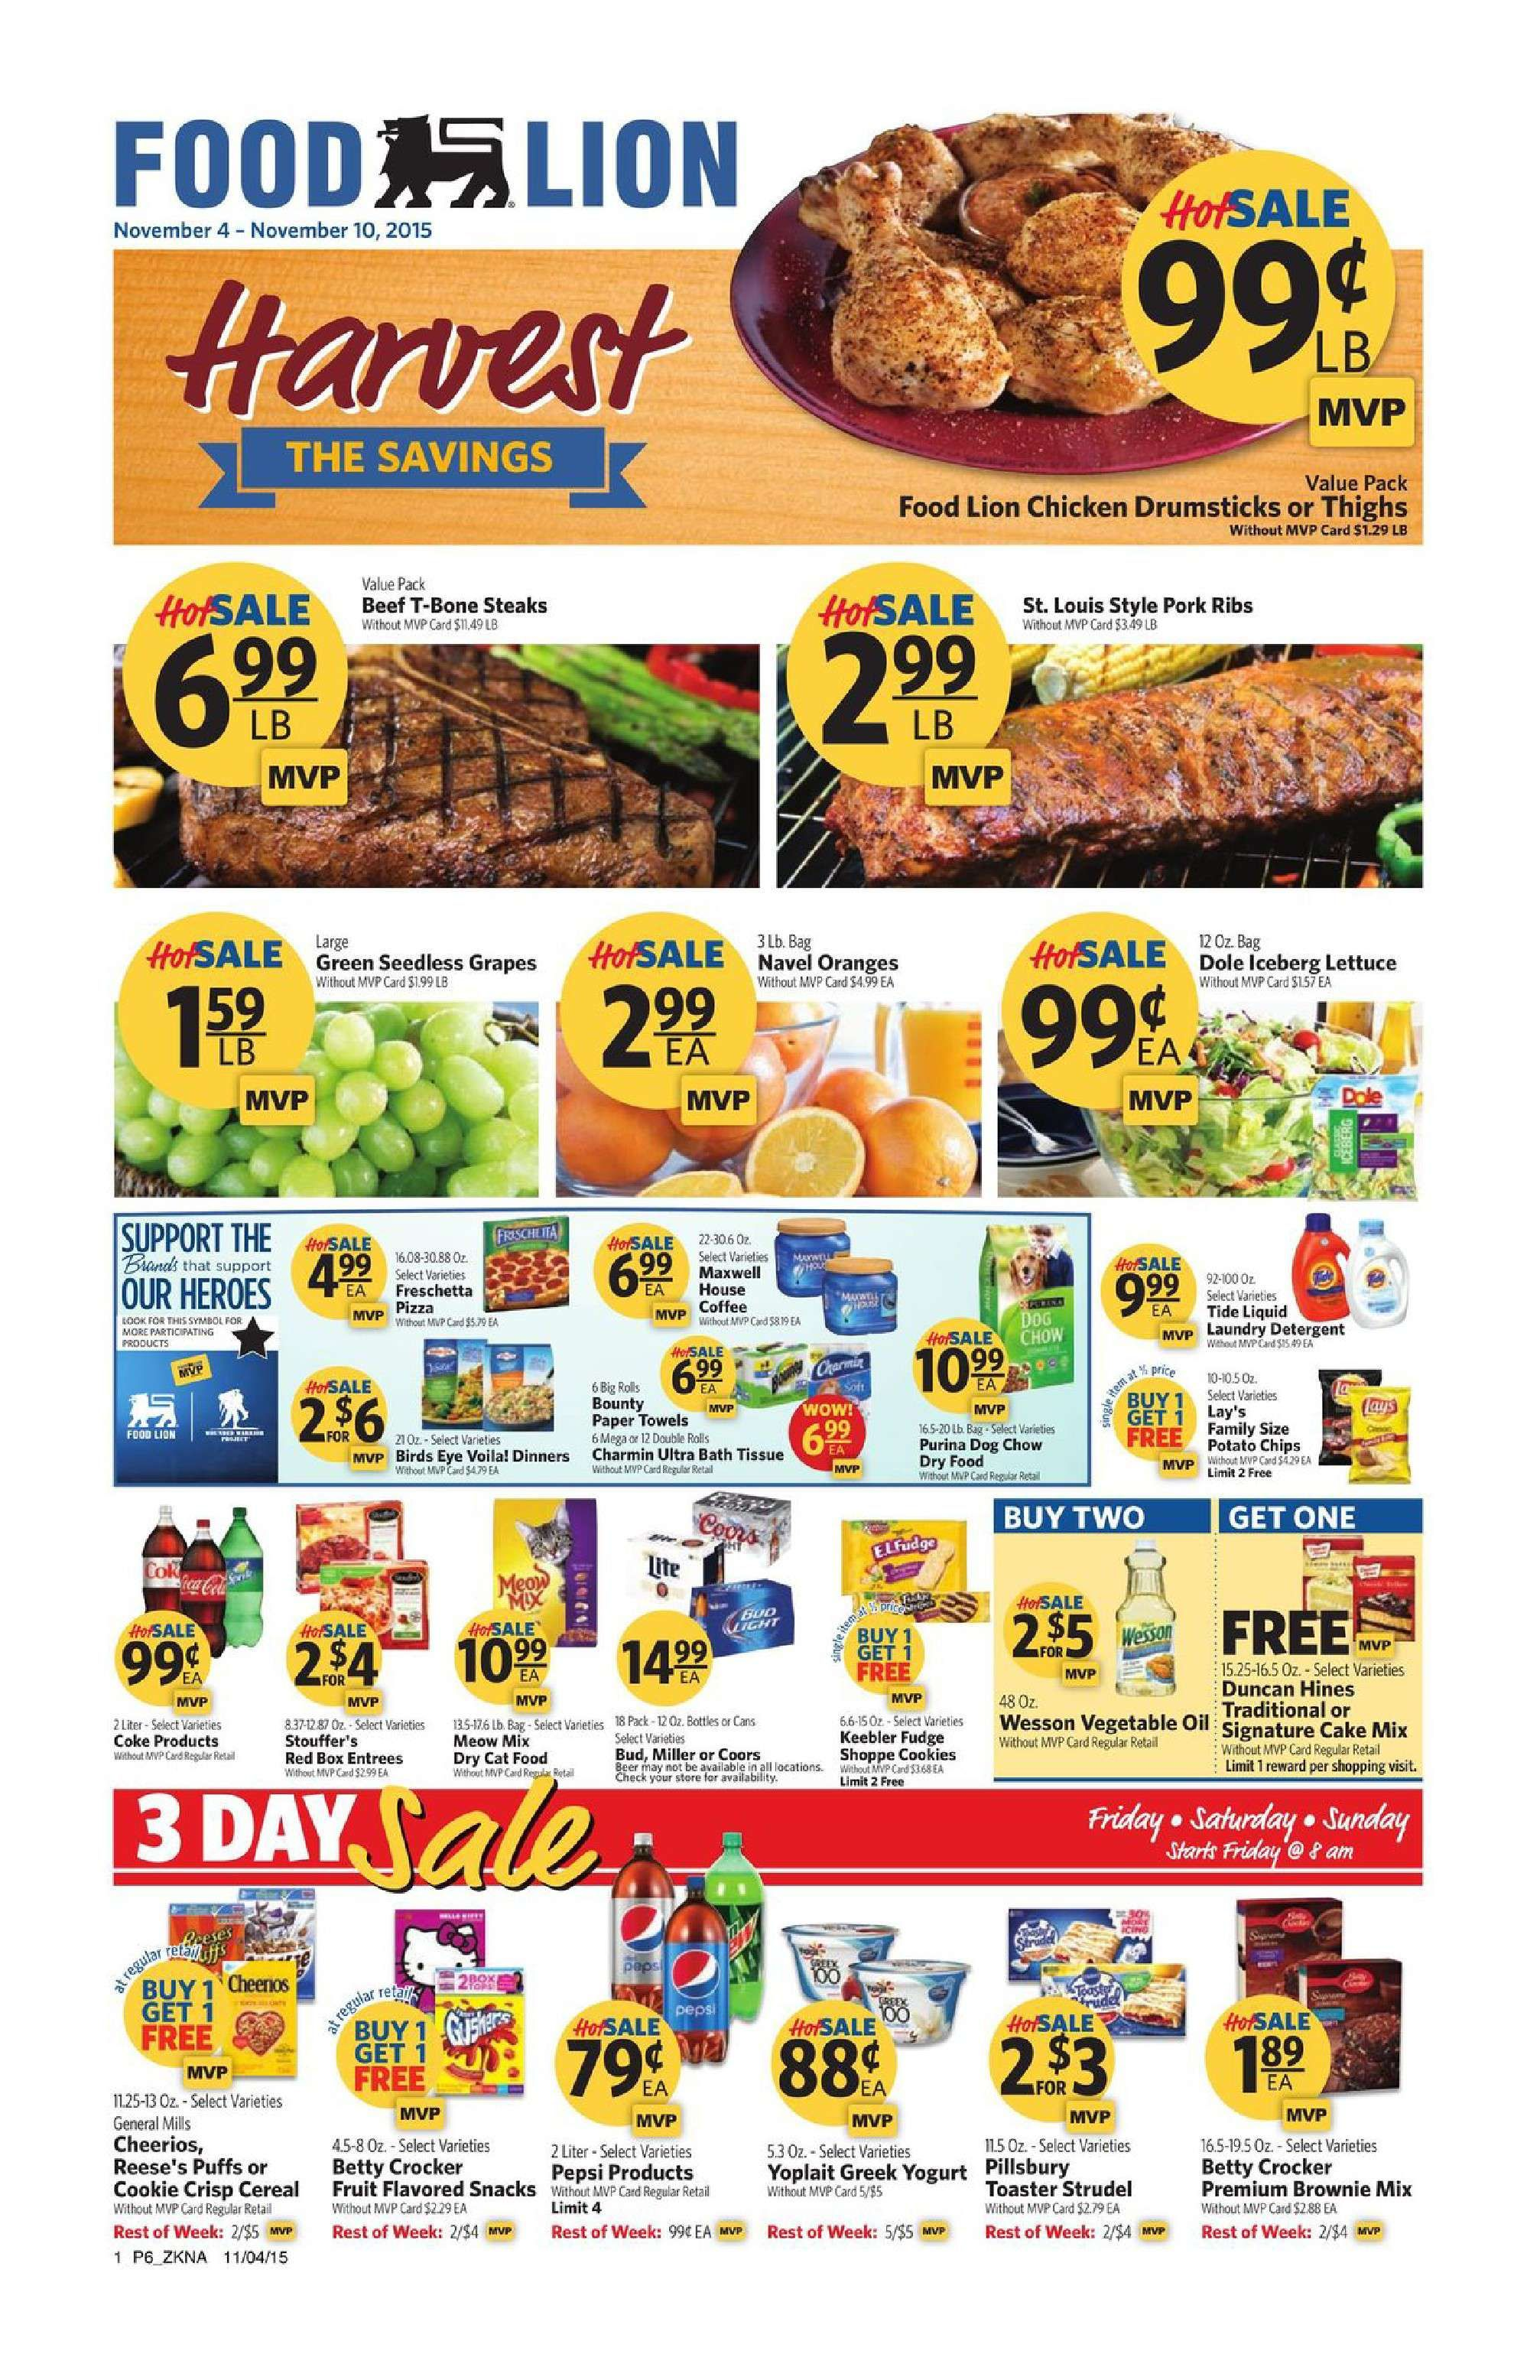 Food lion weekly ad june 21 2017 do you know what s in and what s hot in the food lion for this week here are food lion ad this week